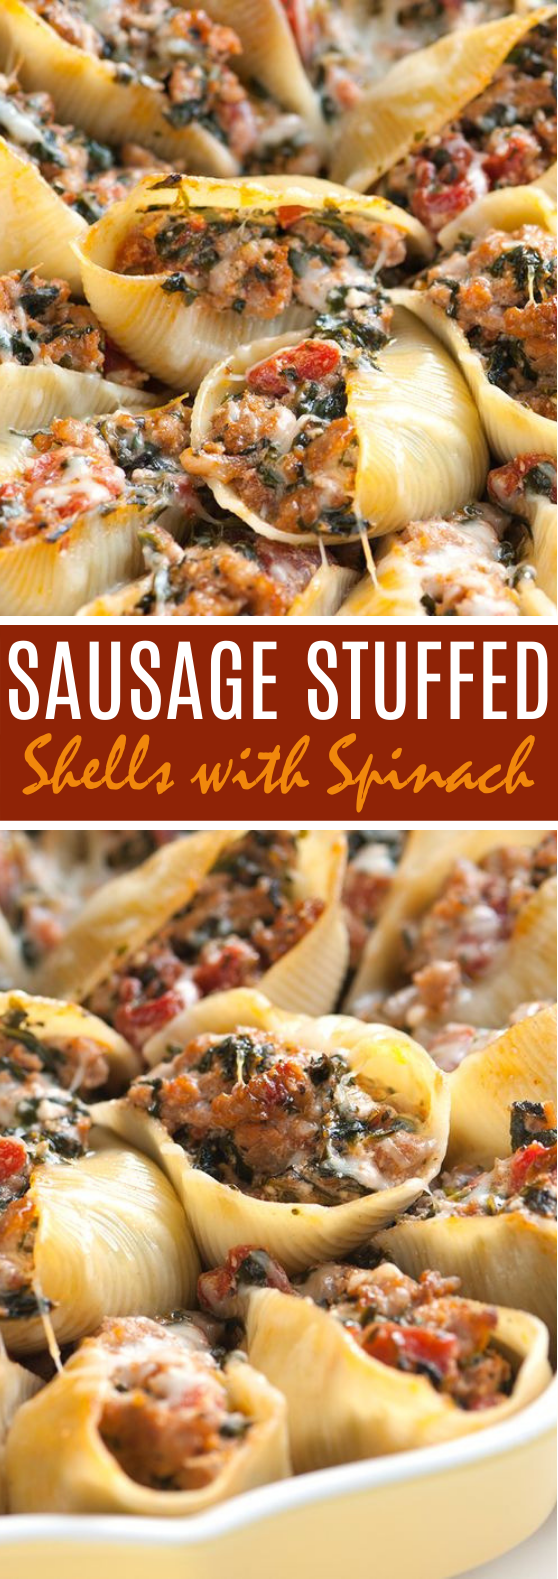 Sausage Stuffed Shells with Spinach #dinner #easy #pasta #comfortfood #sausage